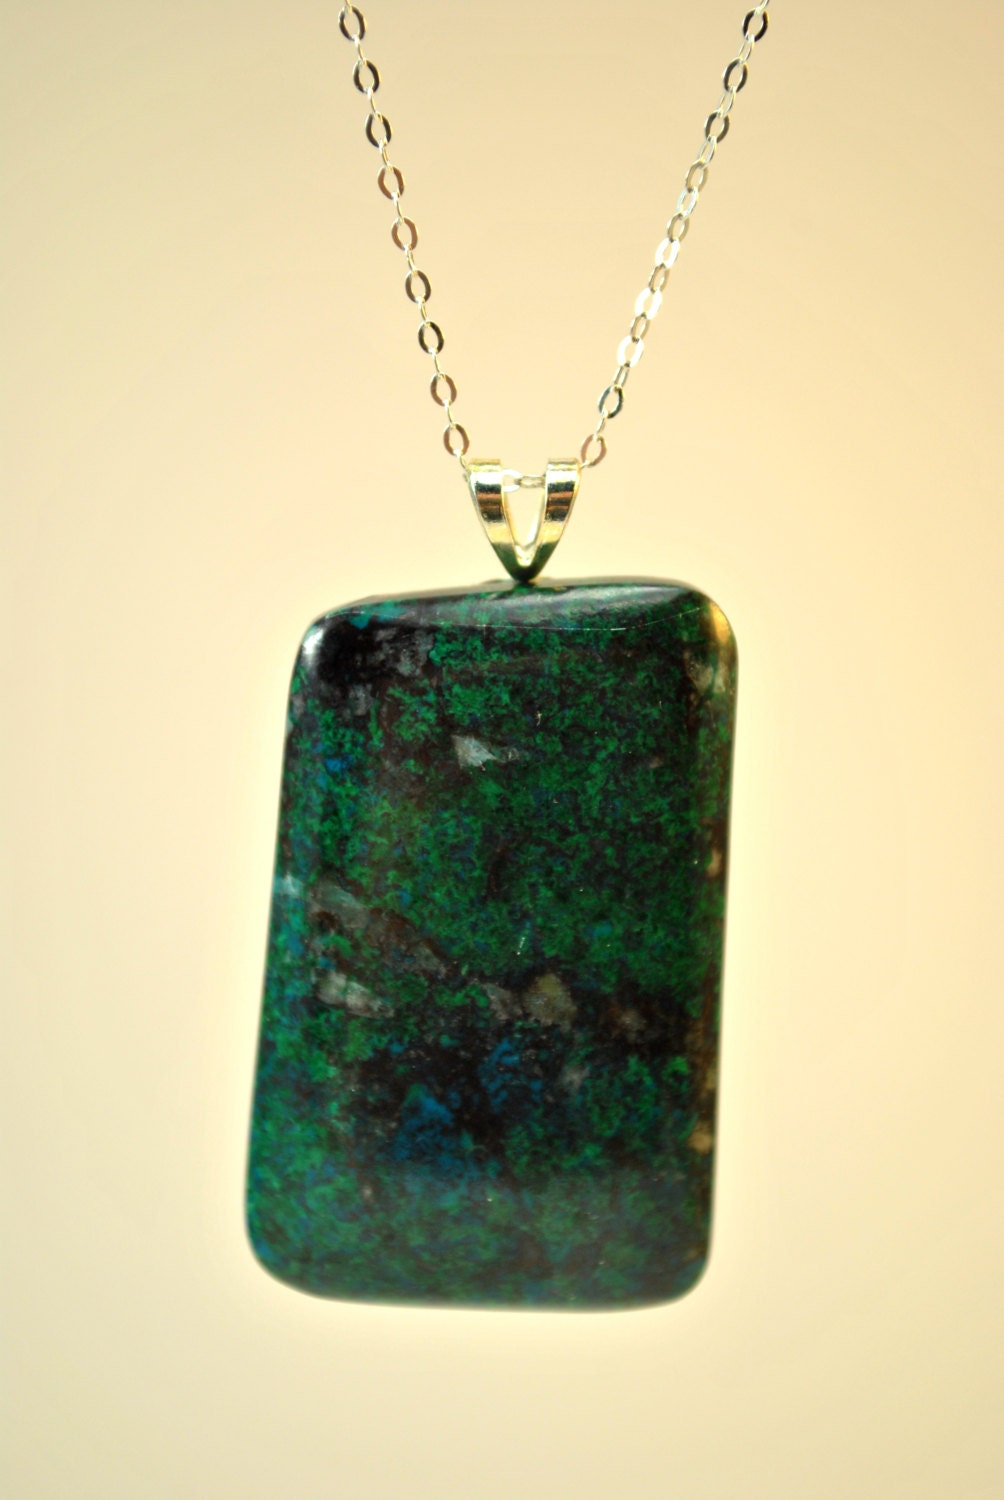 Necklace of Chrysocolla stone pendant suspended on a Sterling Silver 18 inch chain - Beechtree